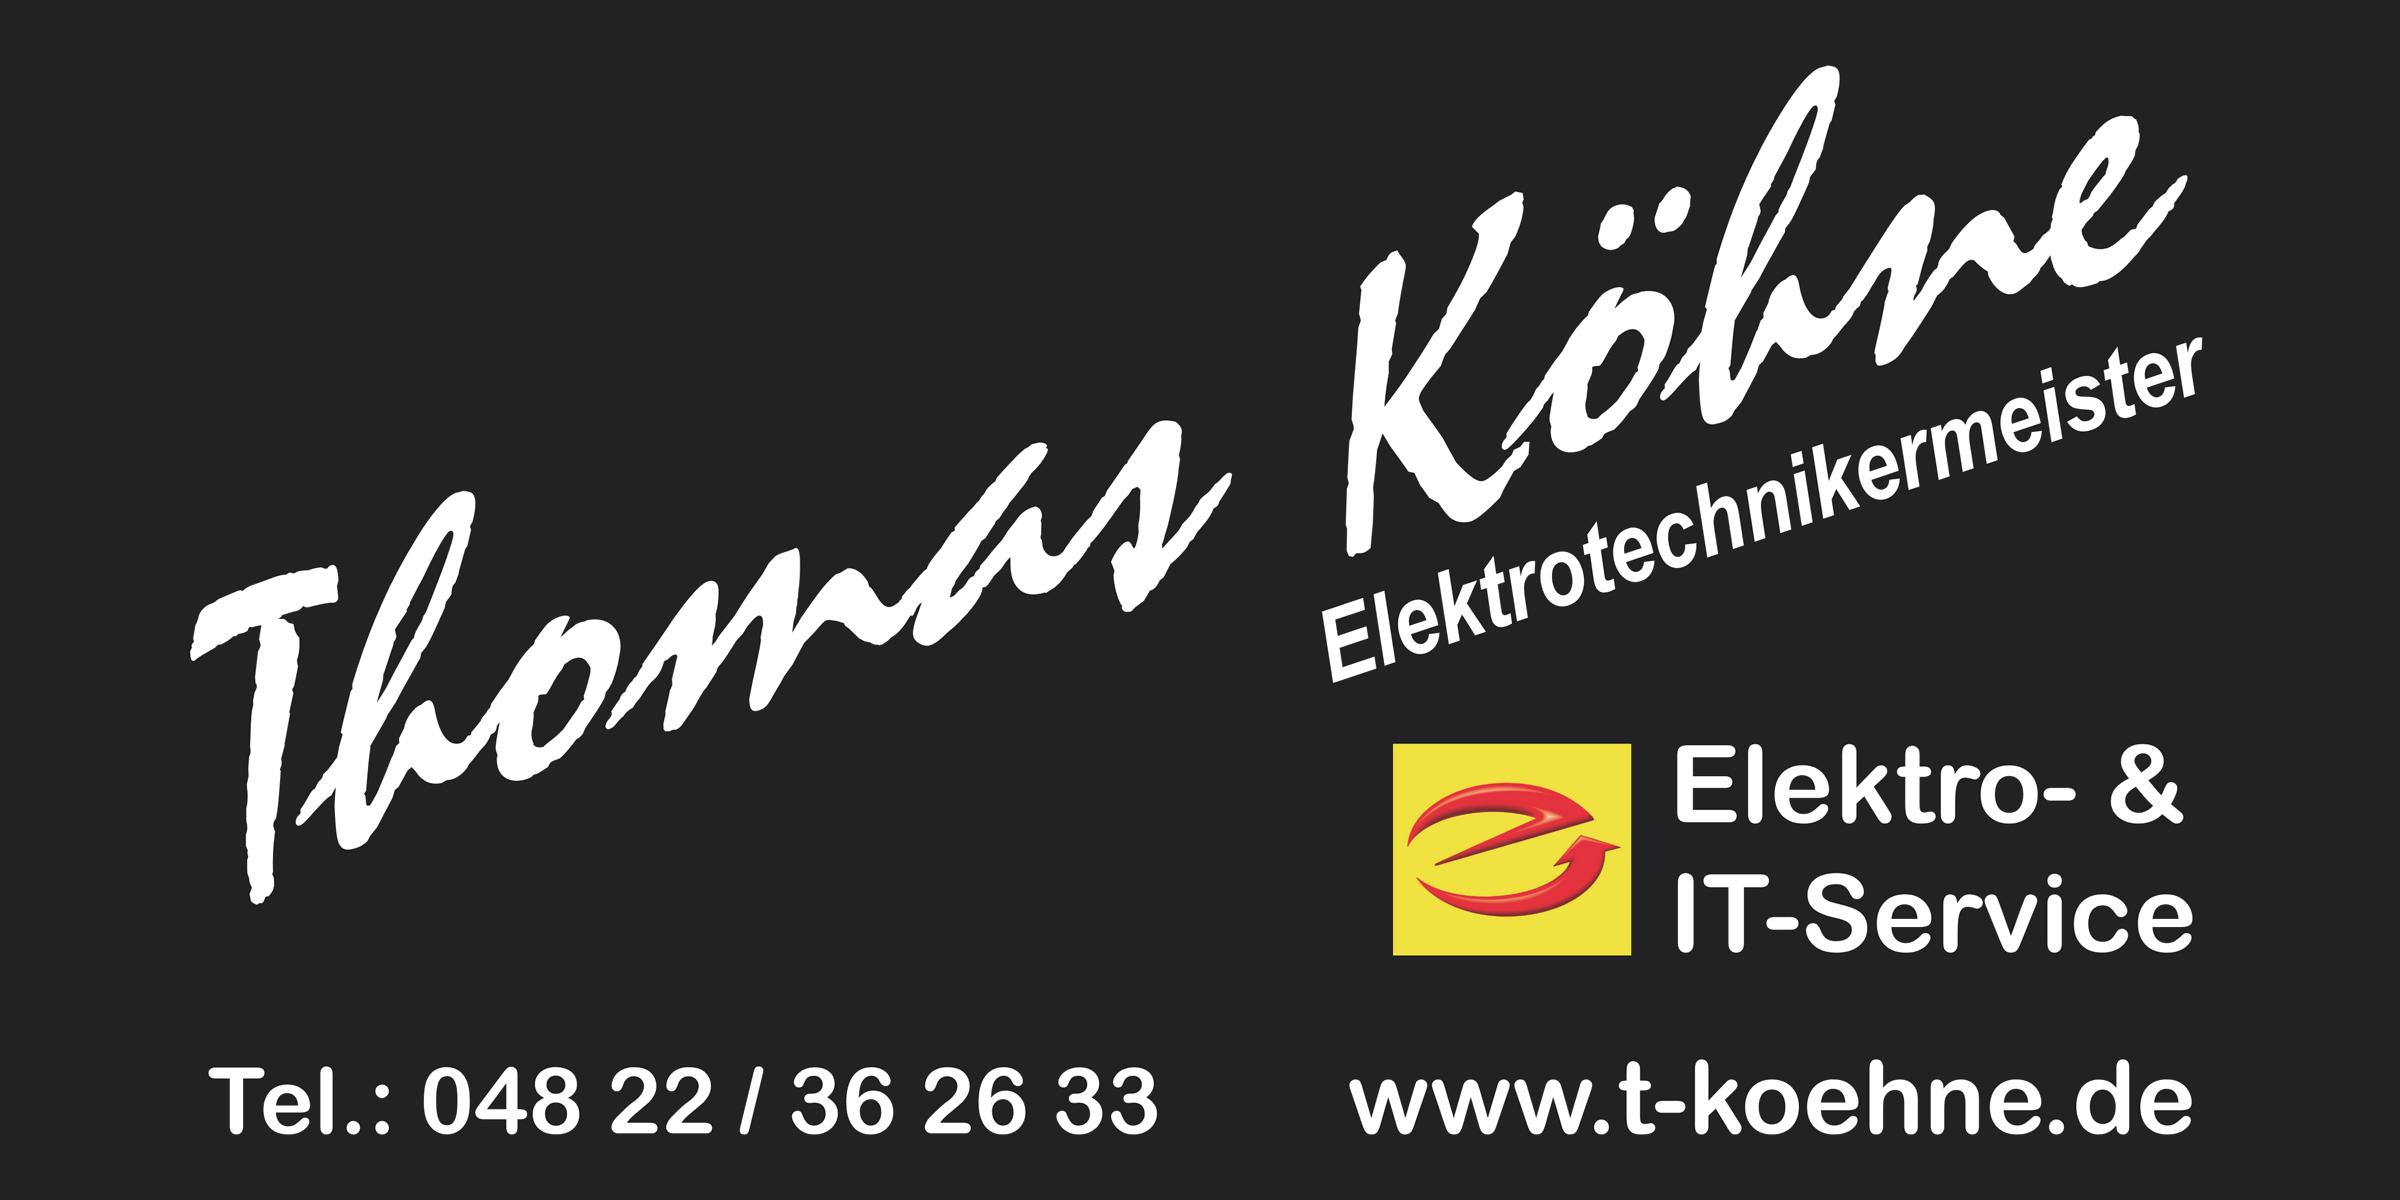 Thomas Köhne Elektro-& IT-Service